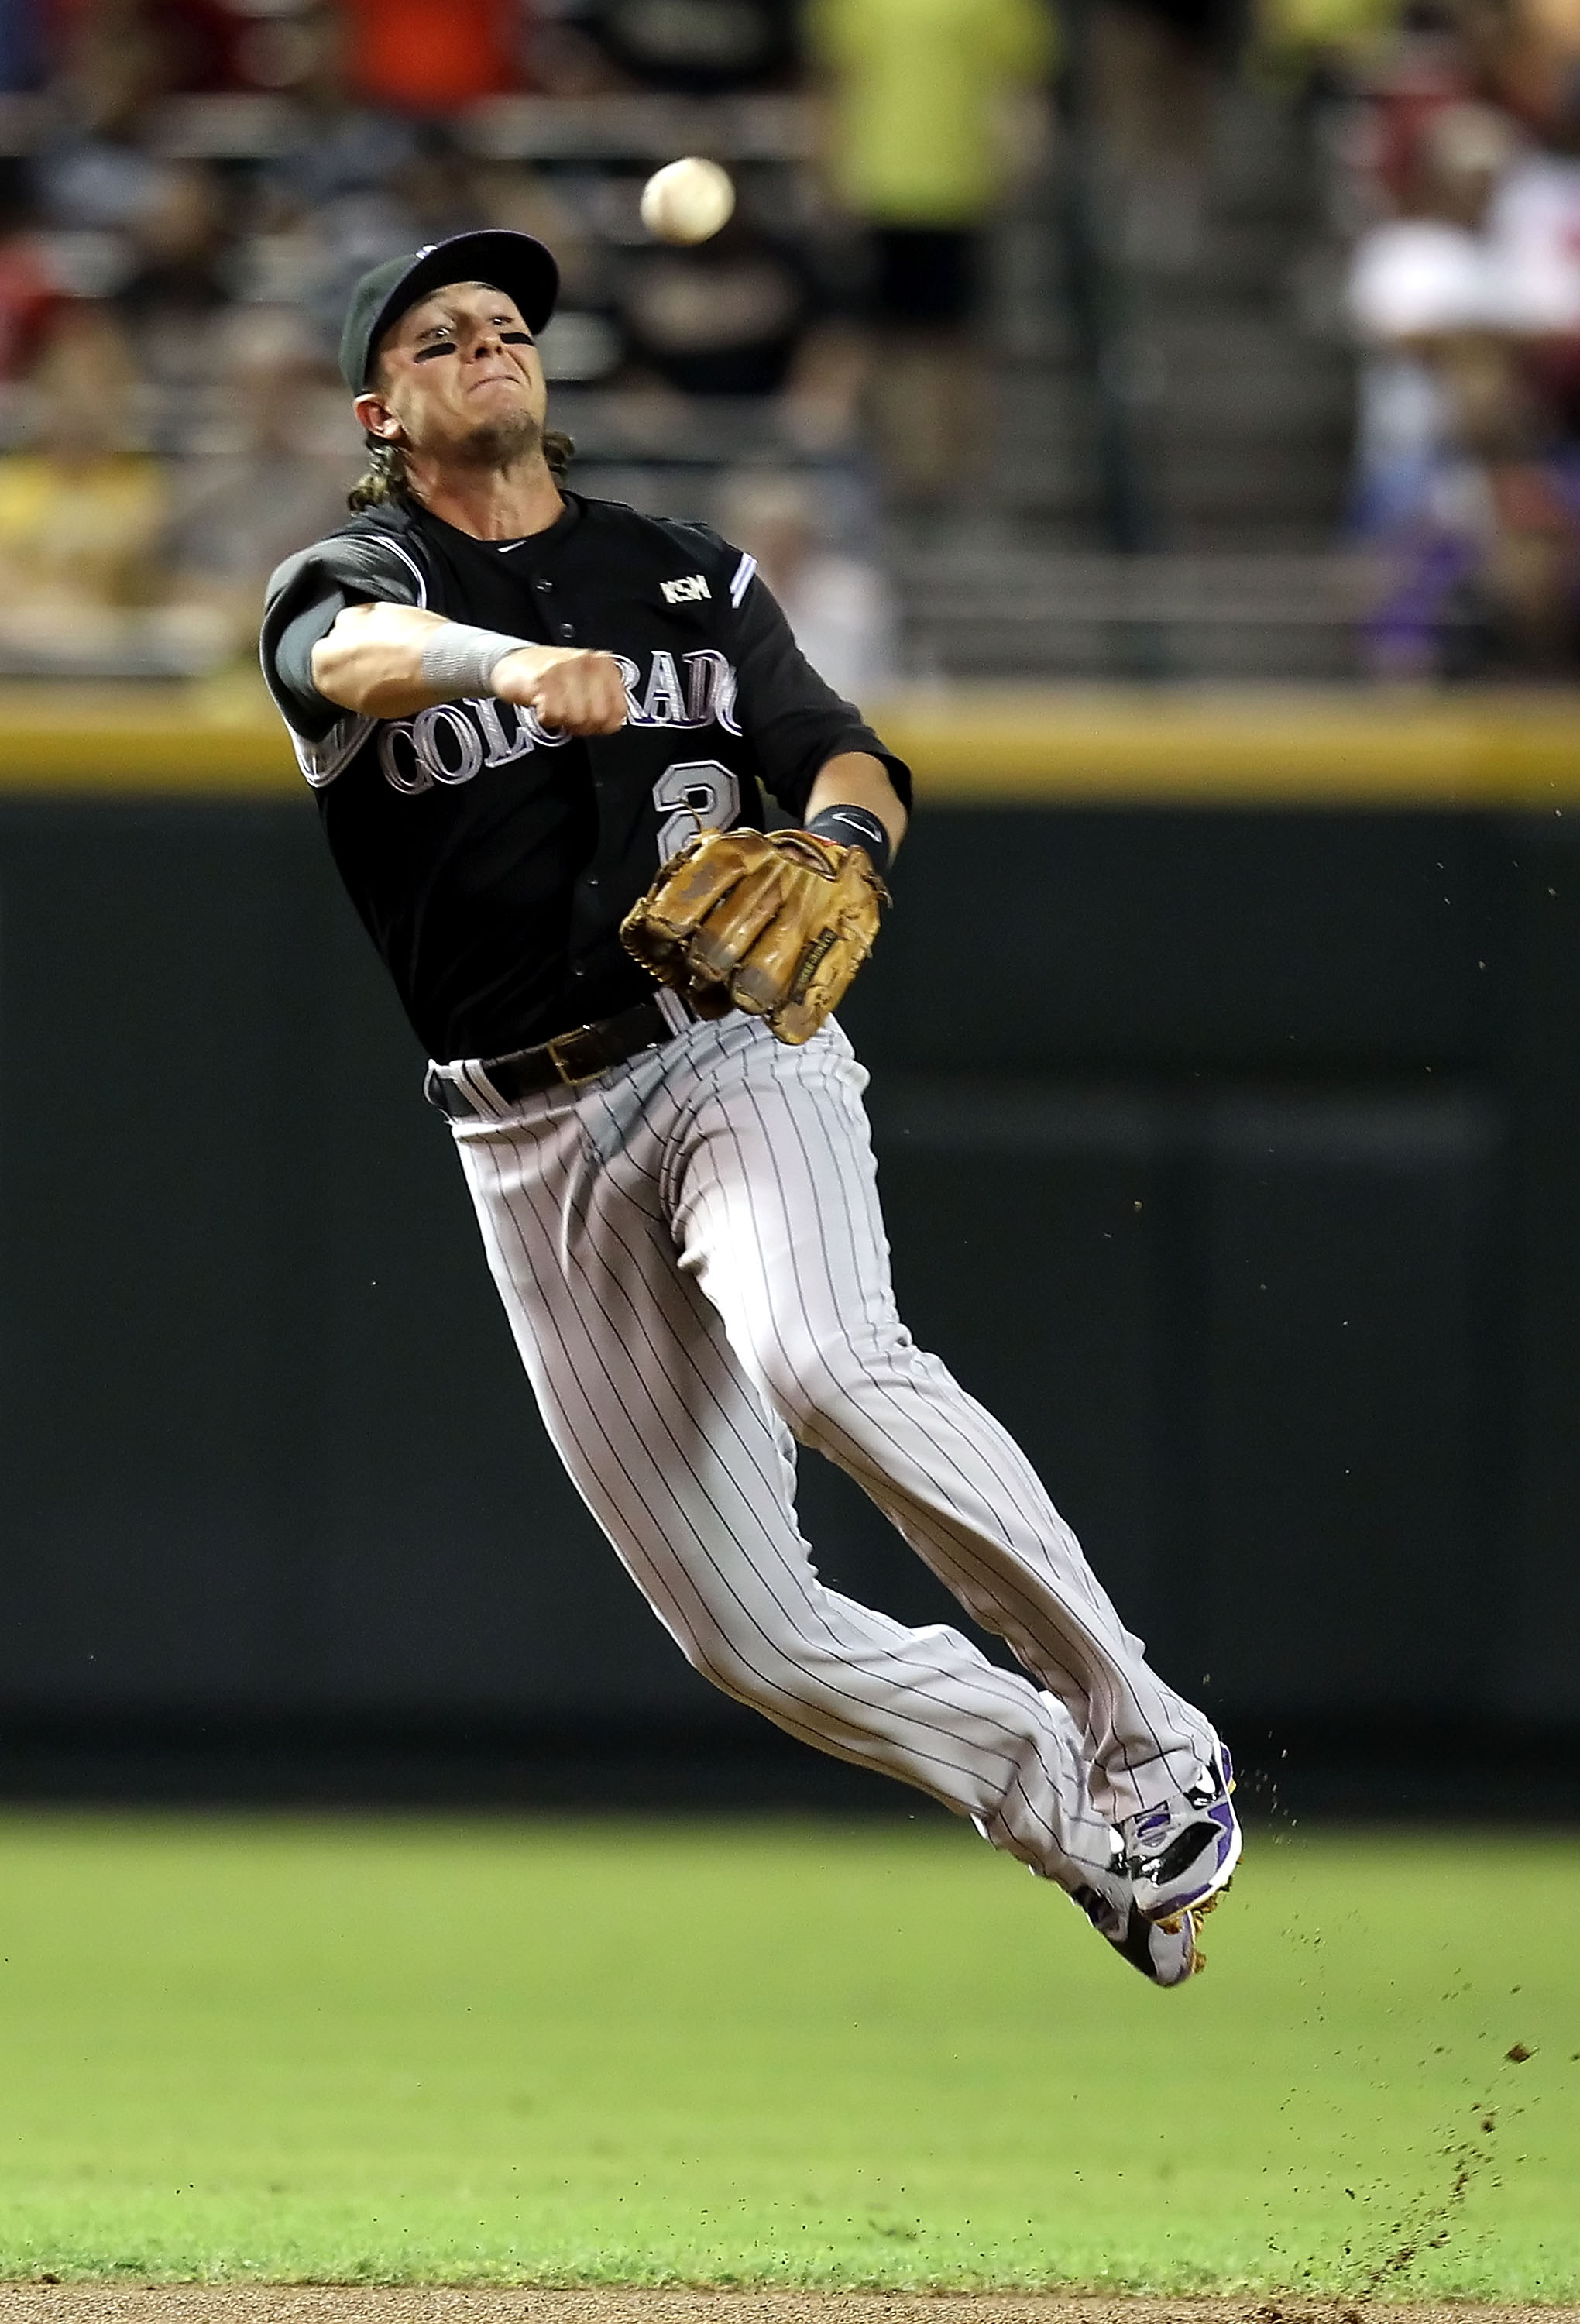 PHOENIX - SEPTEMBER 21:  Infielder Troy Tulowitzki #2 of the Colorado Rockies fields a ground ball out against the Arizona Diamondbacks during the first inning of the Major League Baseball game at Chase Field on September 21, 2010 in Phoenix, Arizona.  (P